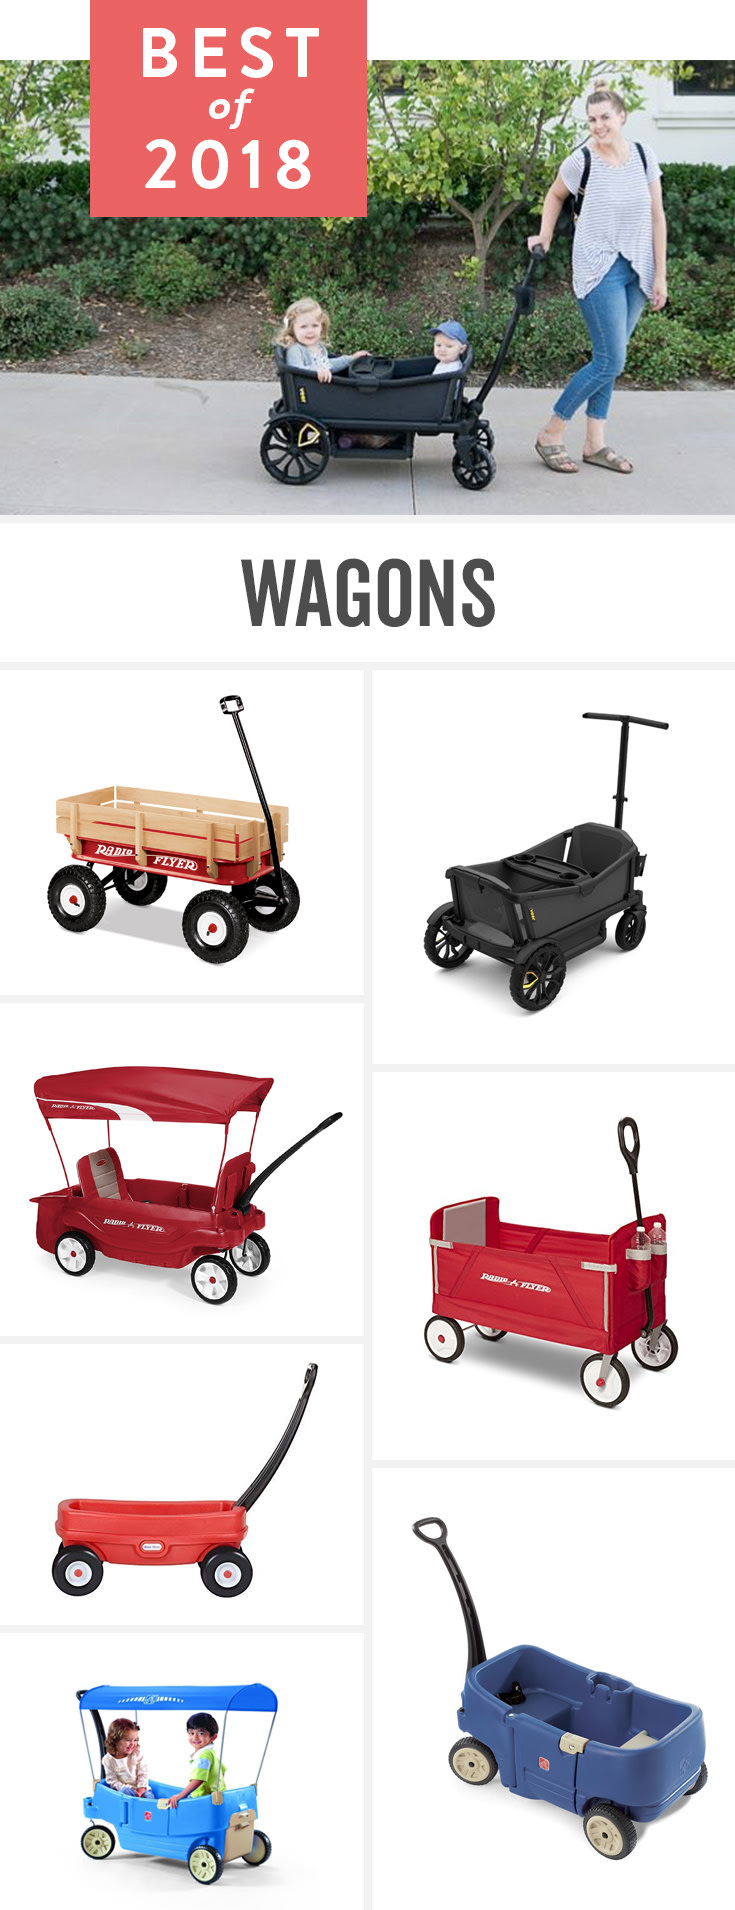 No matter how great your stroller is or how much it can hold, sometimes you just need a wagon.